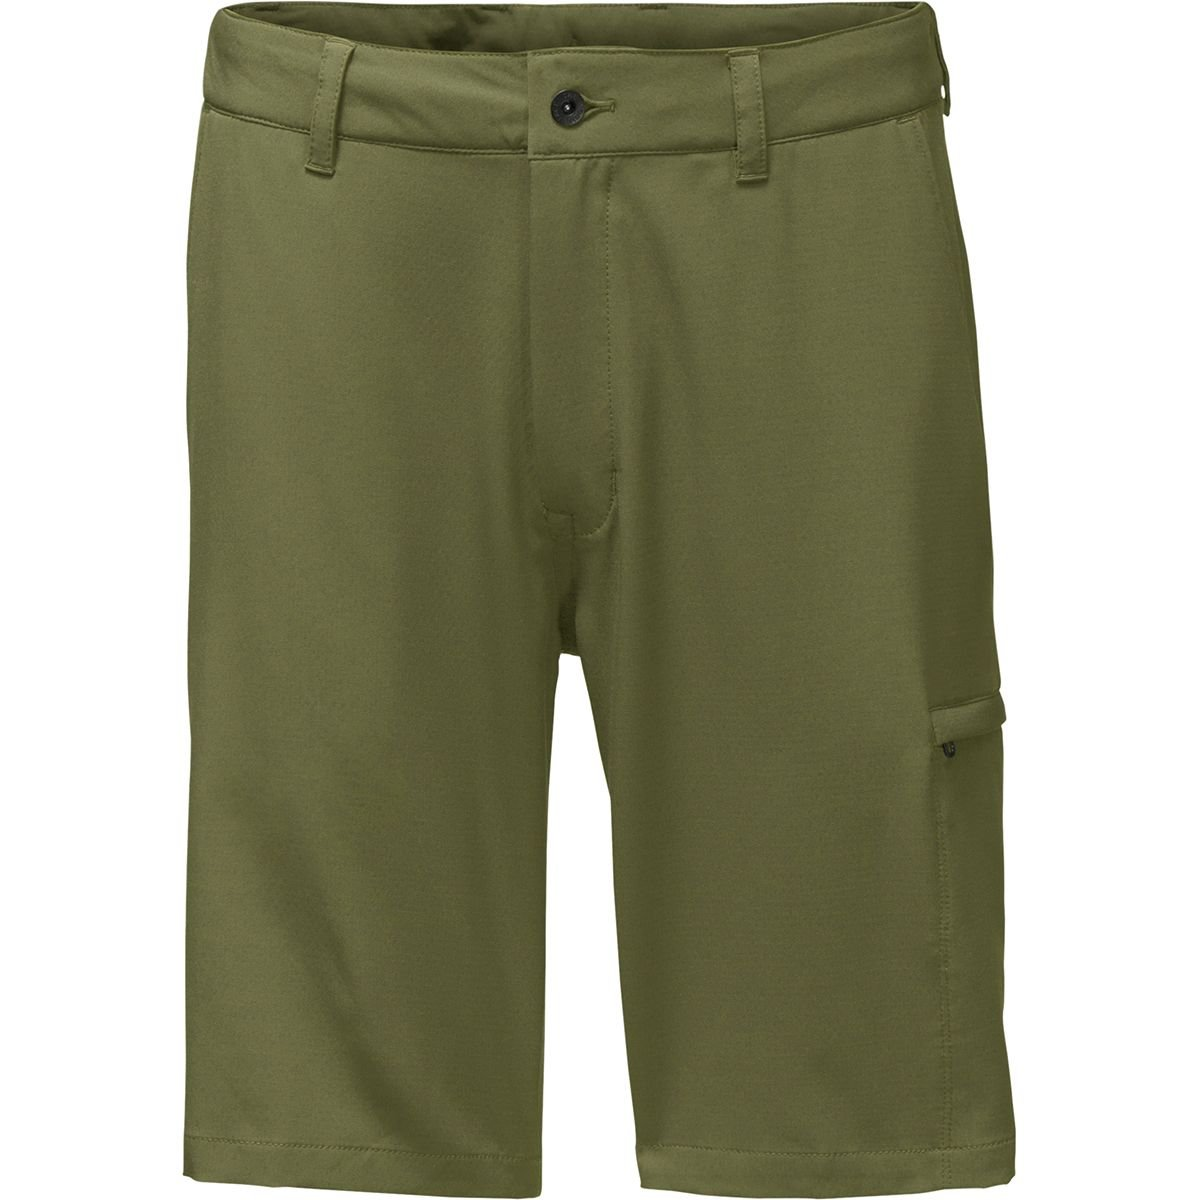 The North Face SHORTS メンズ B072N8WGBD 36 10|Burnt Olive Green Burnt Olive Green 36 10